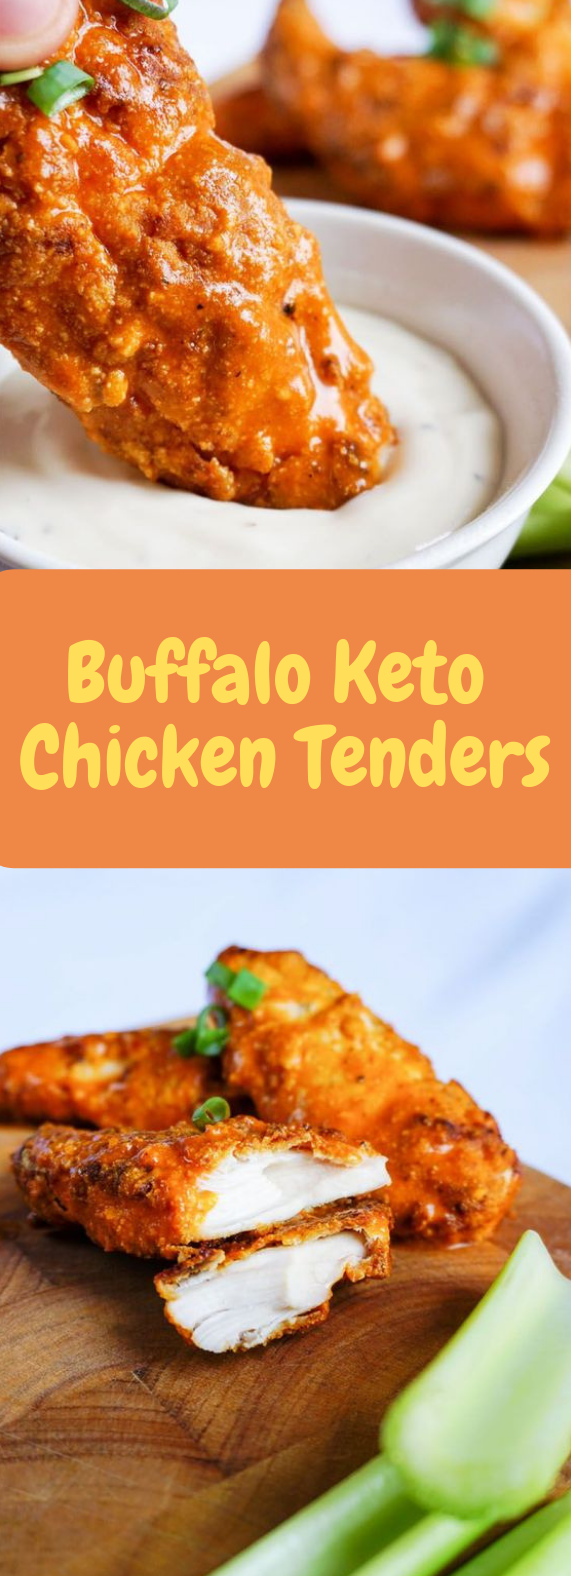 BUFFALO KETO CHICKEN TENDERS #familyrecipe #delicious